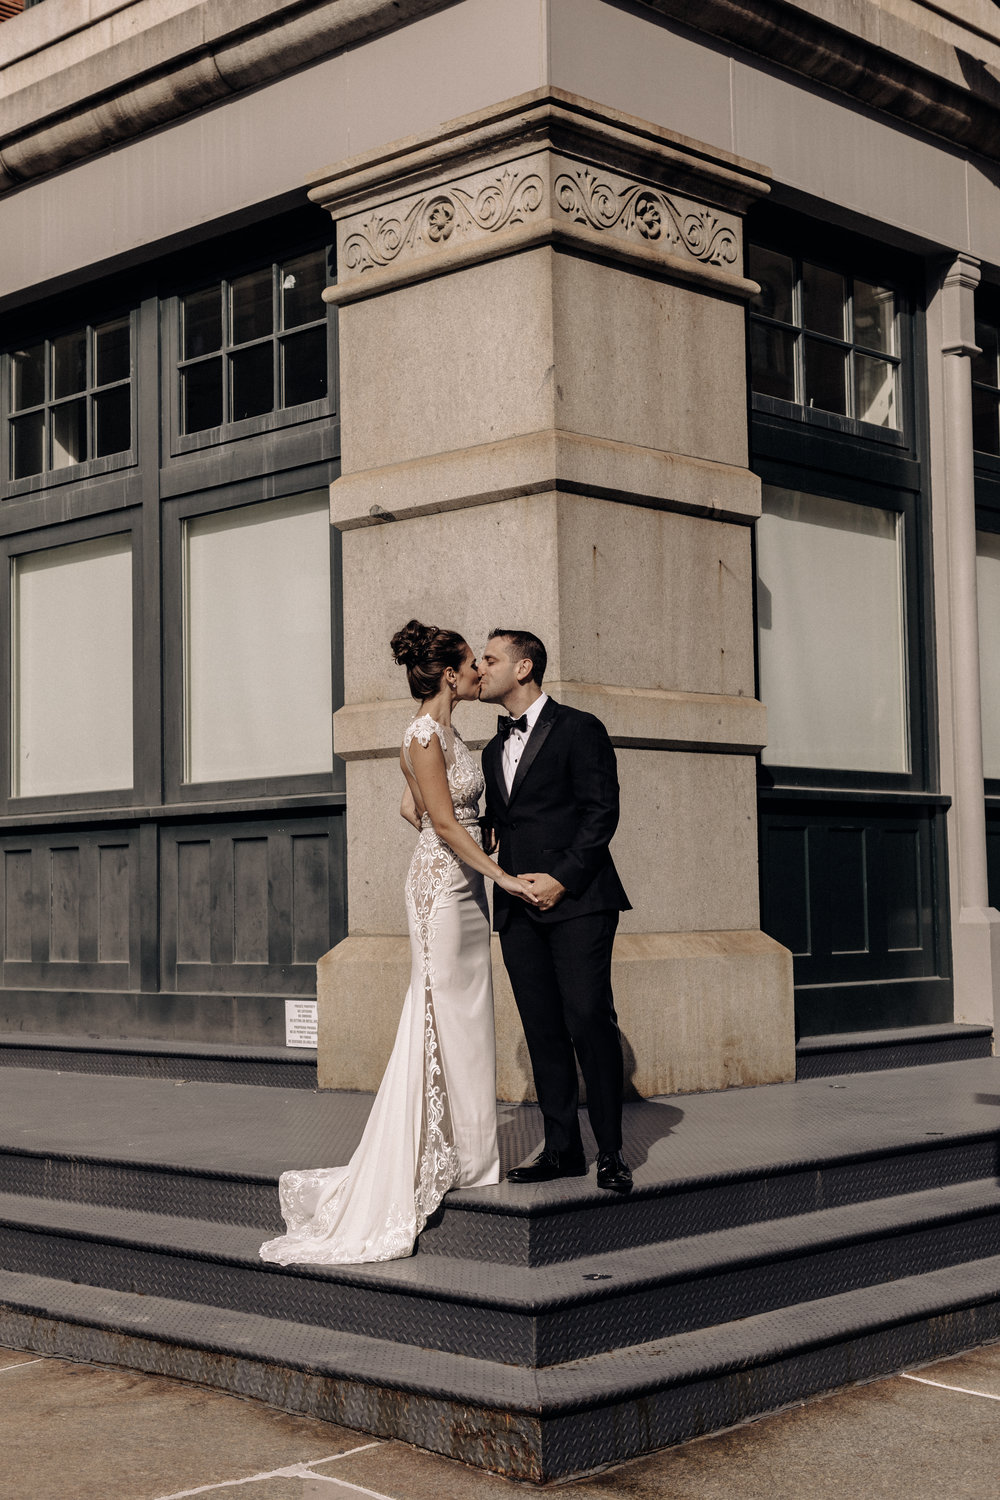 Hailley+Howard_Manhattan+Wedding_The+Tibecca+Rooftop-79.jpg